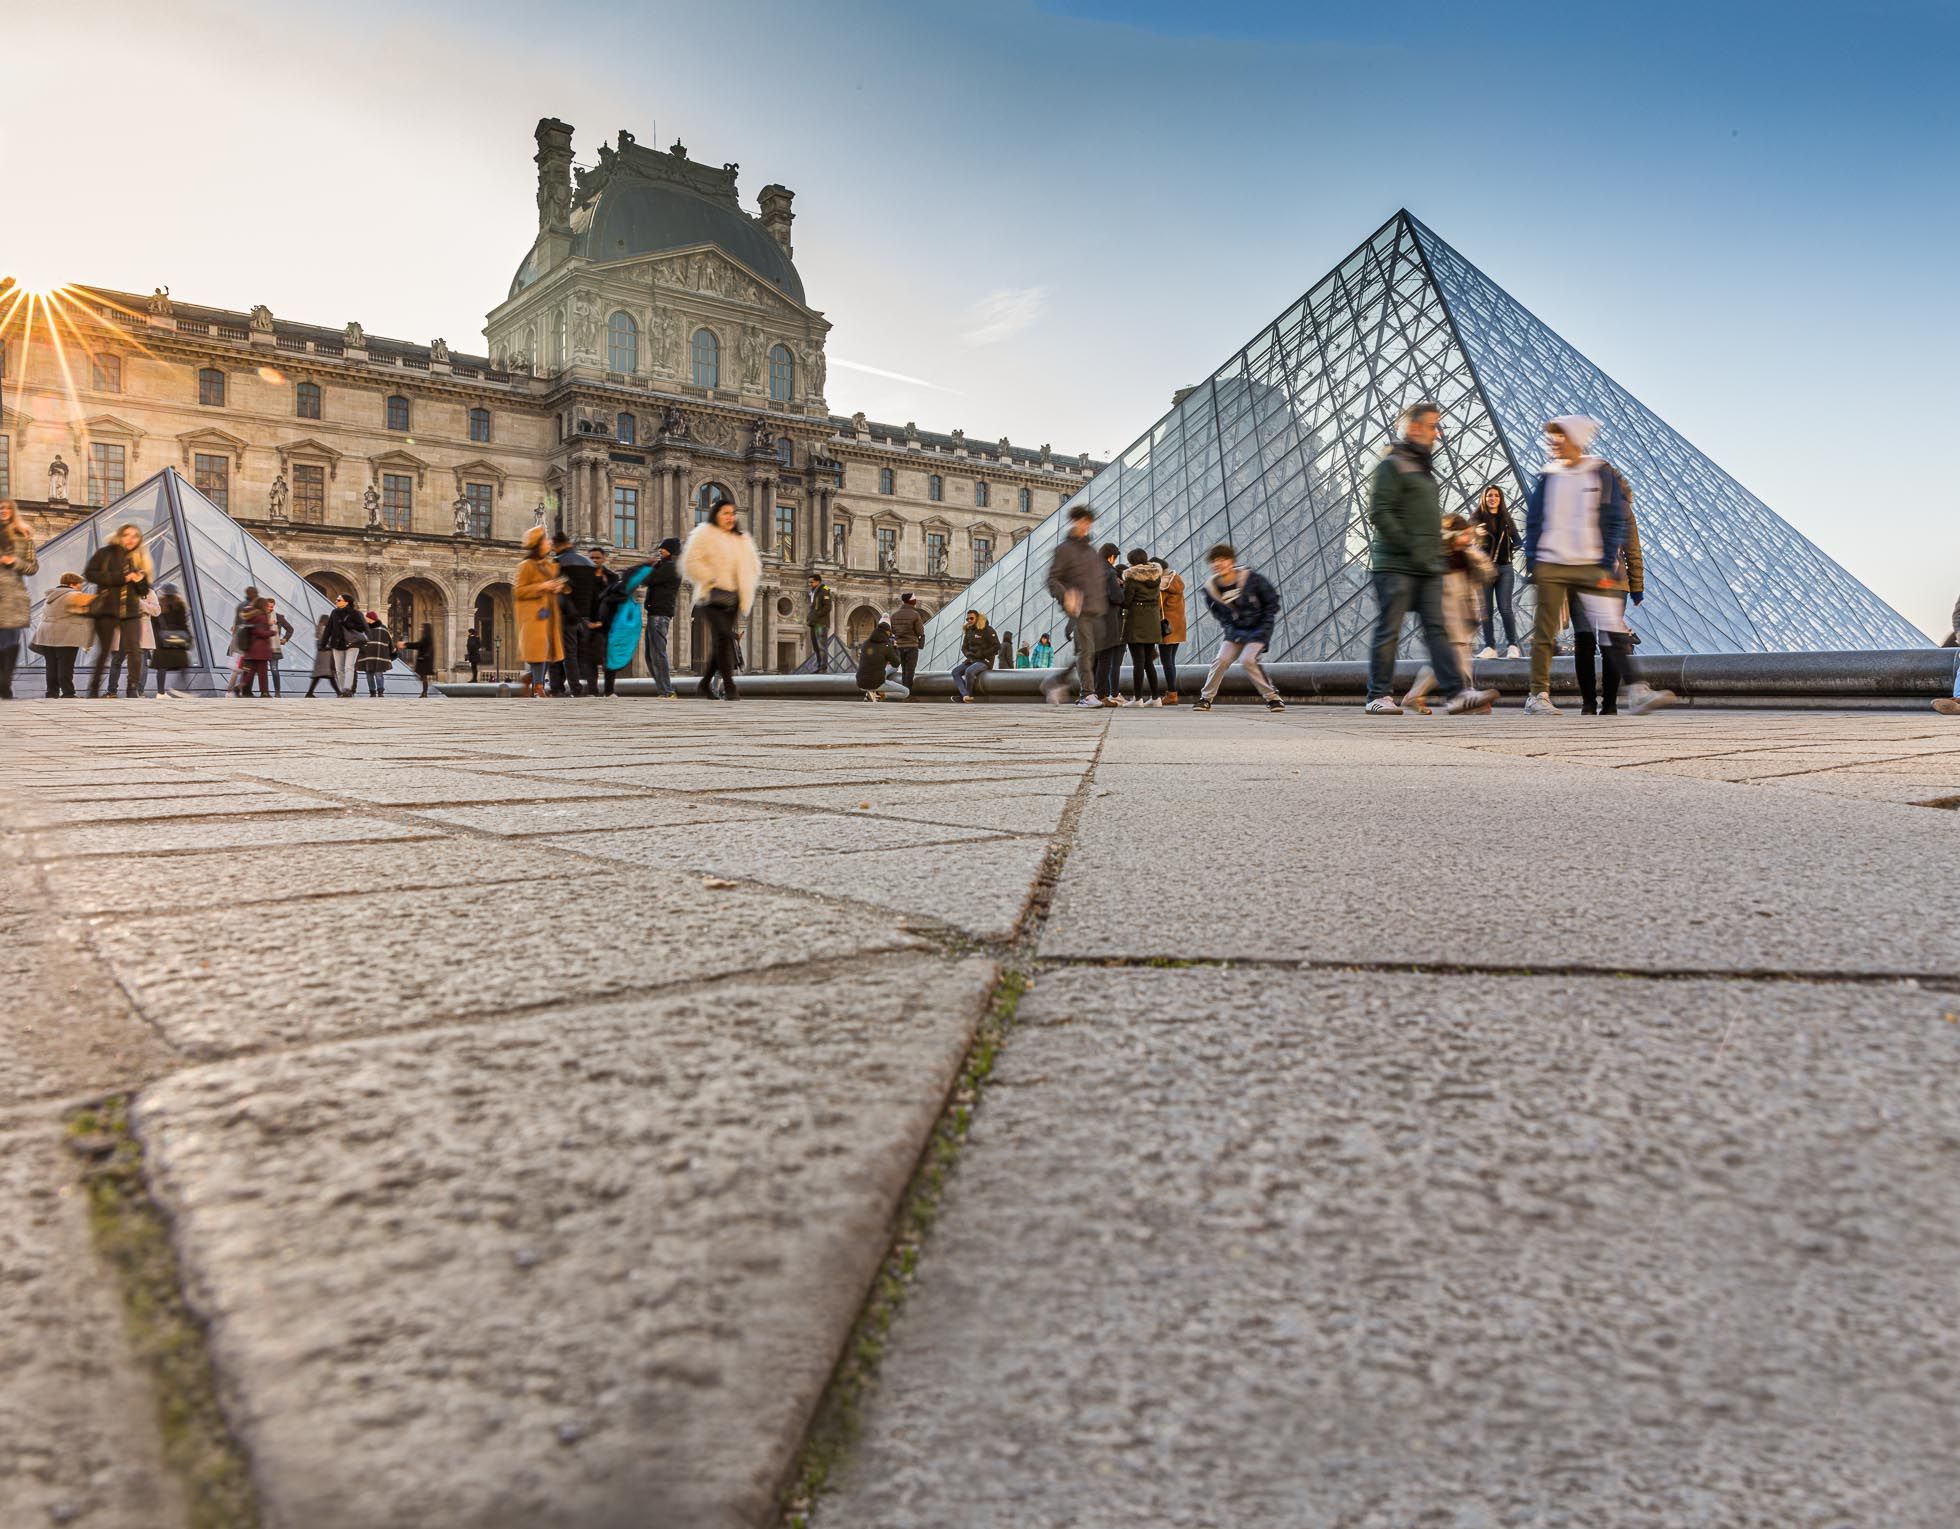 Early morning at the Louvre in Paris with my family all in the frame.